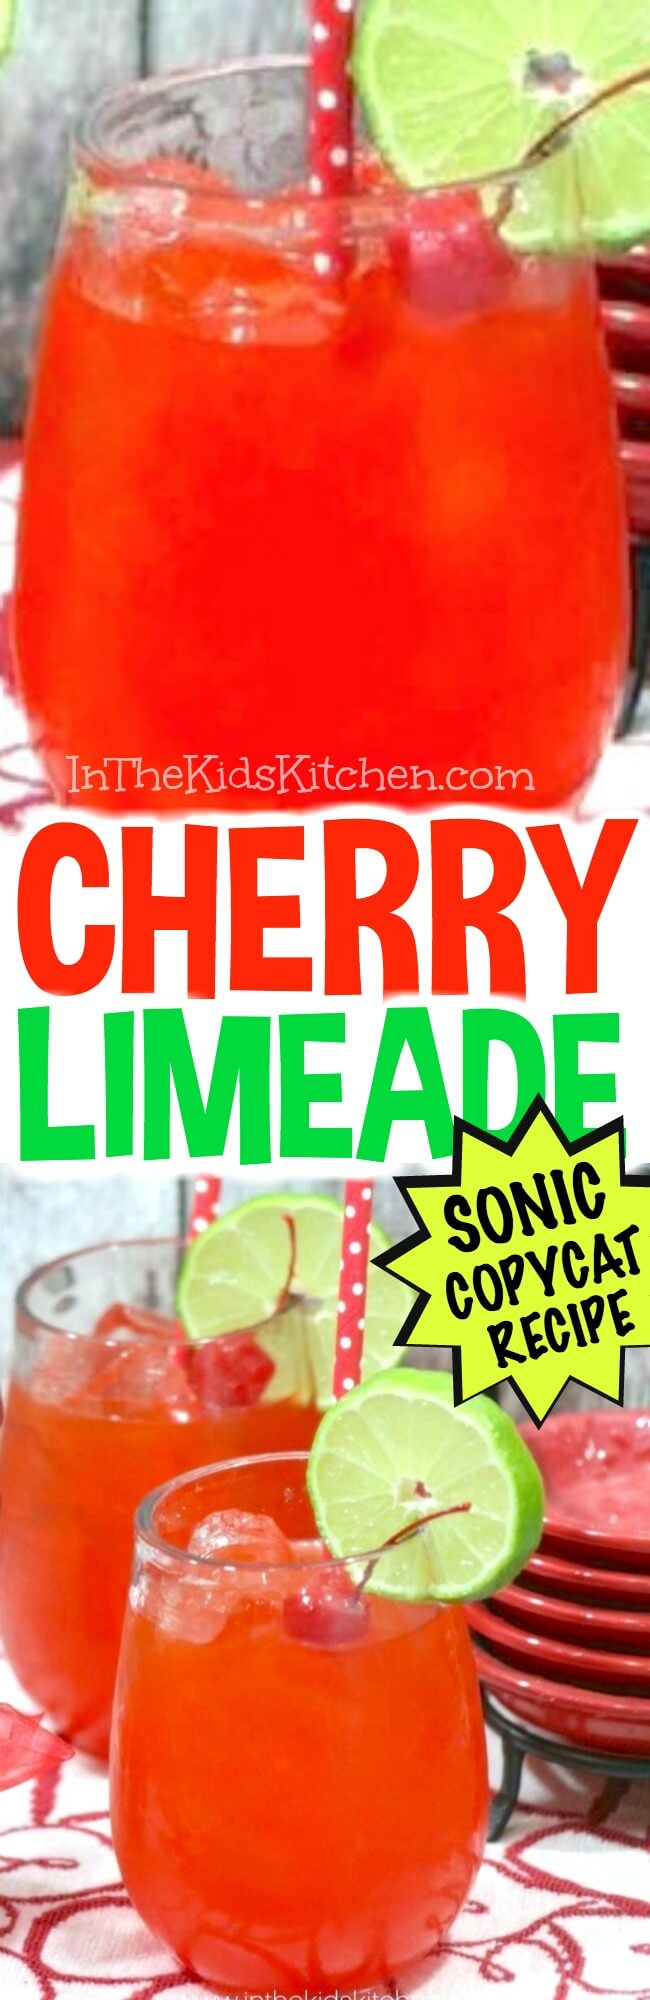 A spot-on homemade version of the famous Sonic Cherry Limeade. Just the right combo of tangy lime and sweet cherry - the ultimate summer classic!